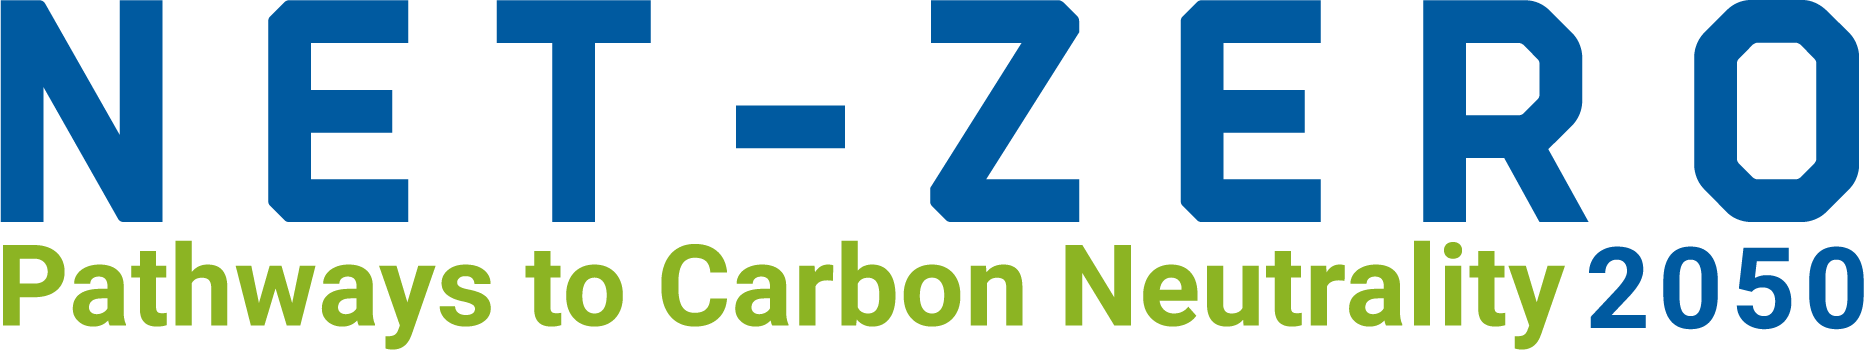 Net-Zero Pathways to Carbon Neutrality 2050